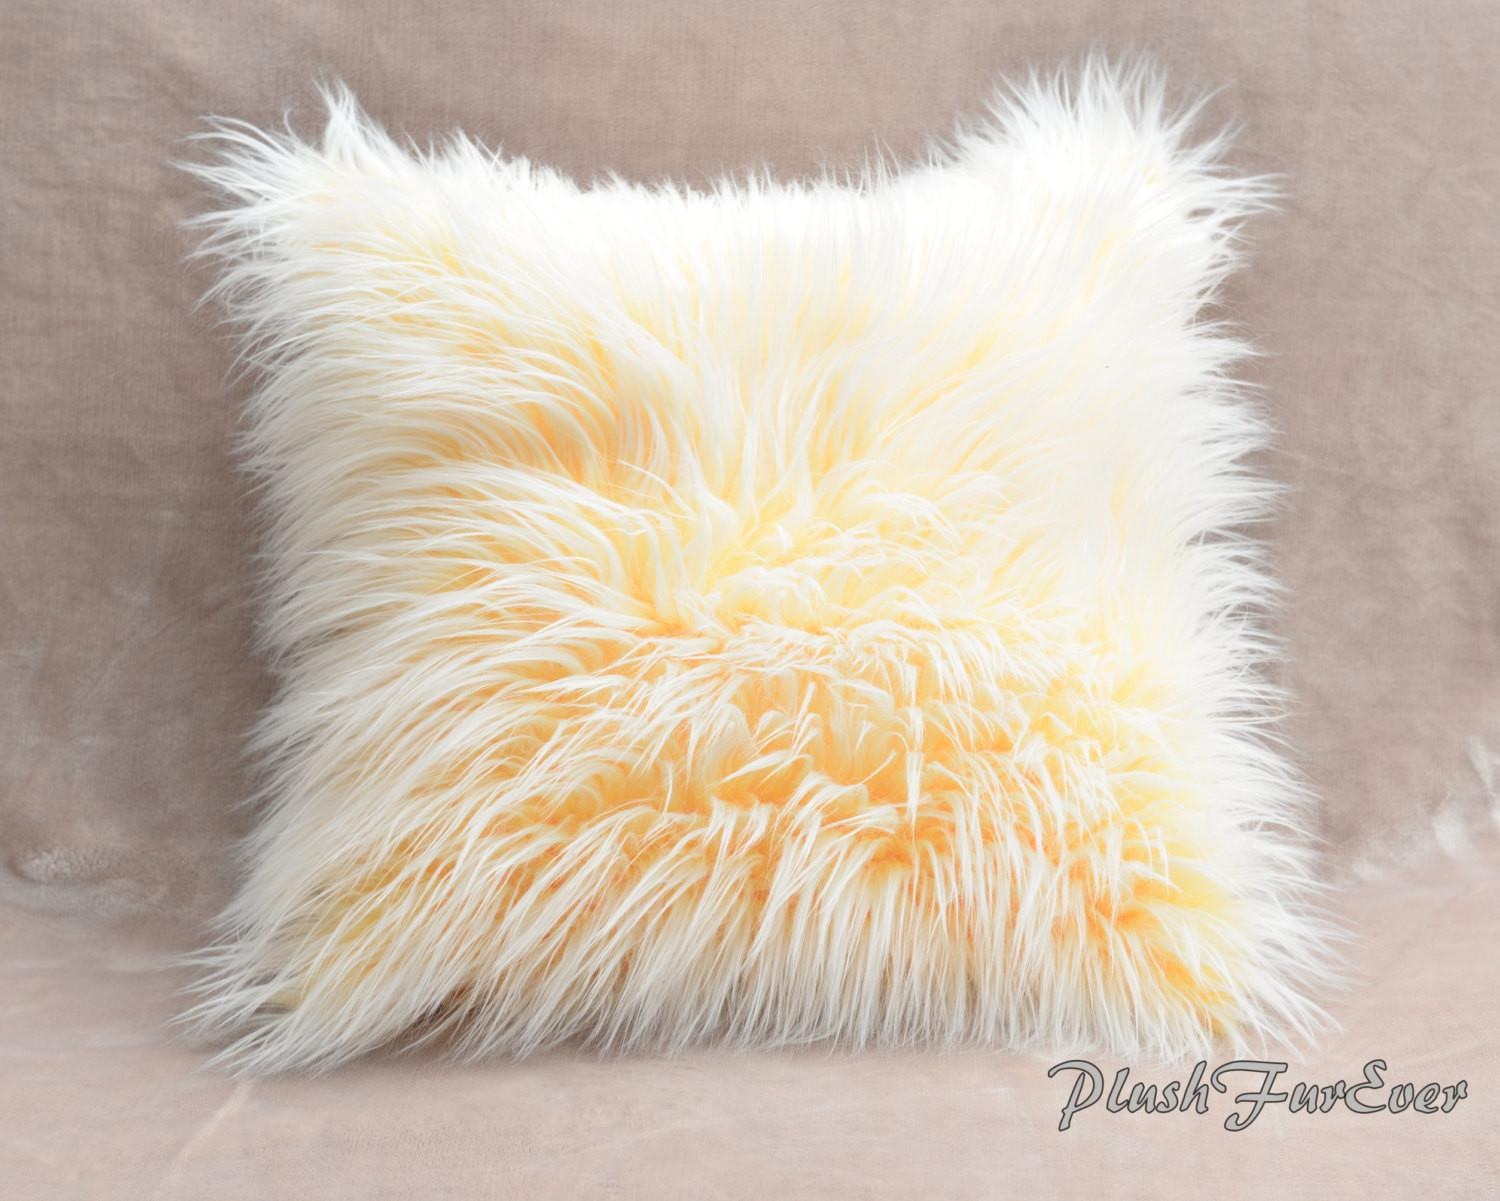 Faux Fur Home Decor Pillows Inserts Included